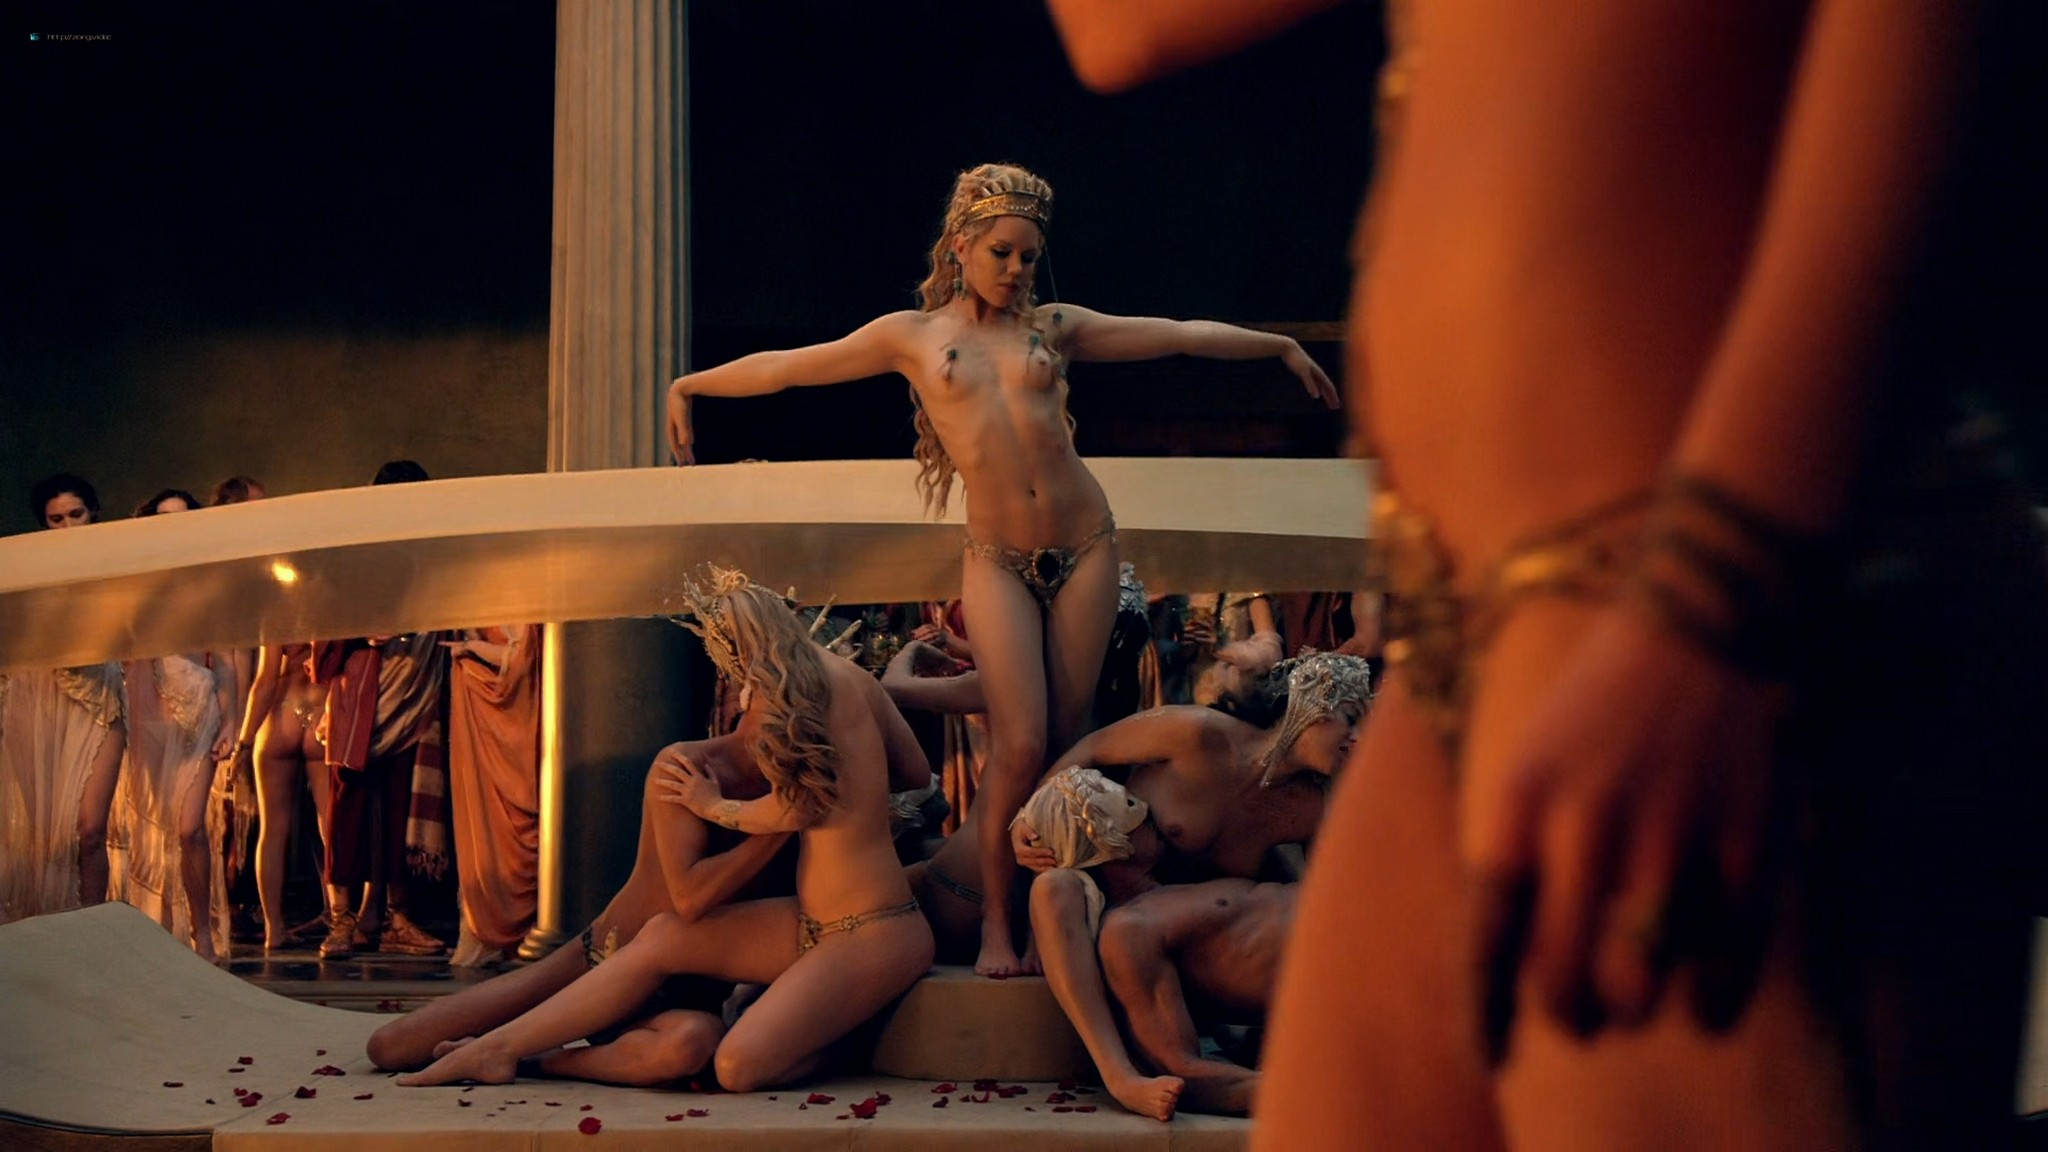 Viva Bianca nude Lucy Lawless nude sex others nude - Spartacus - Vengeance (2012) e4 1080p BluRay (14)